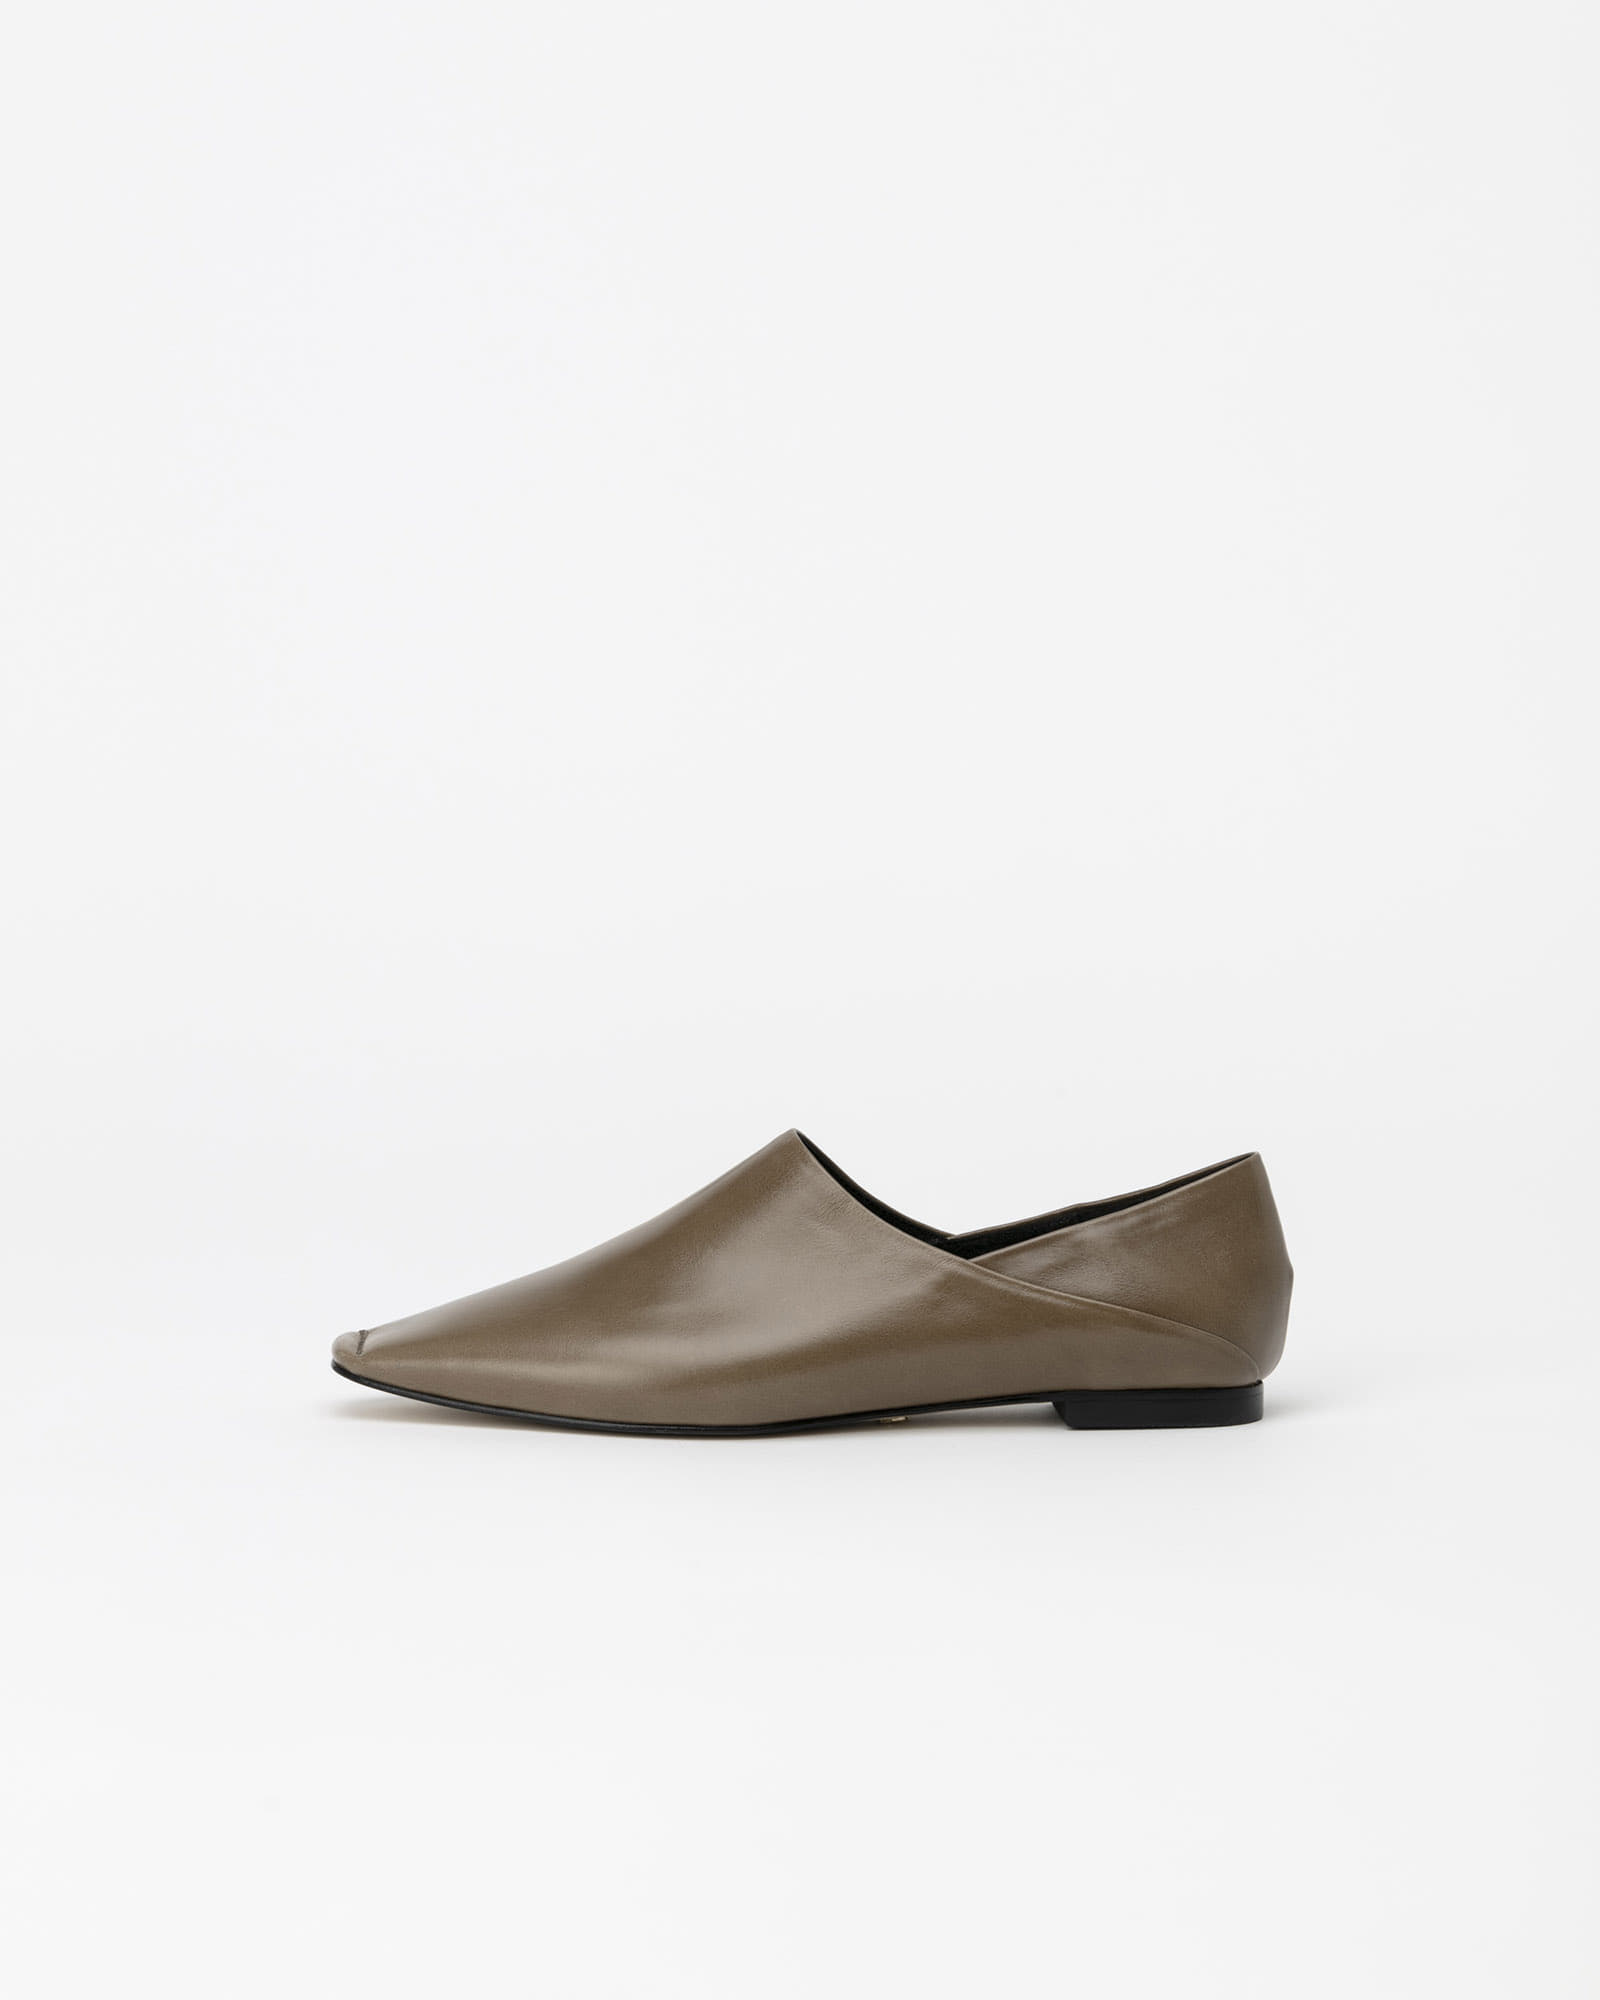 Vessel Flat Shoes in Textured Khaki